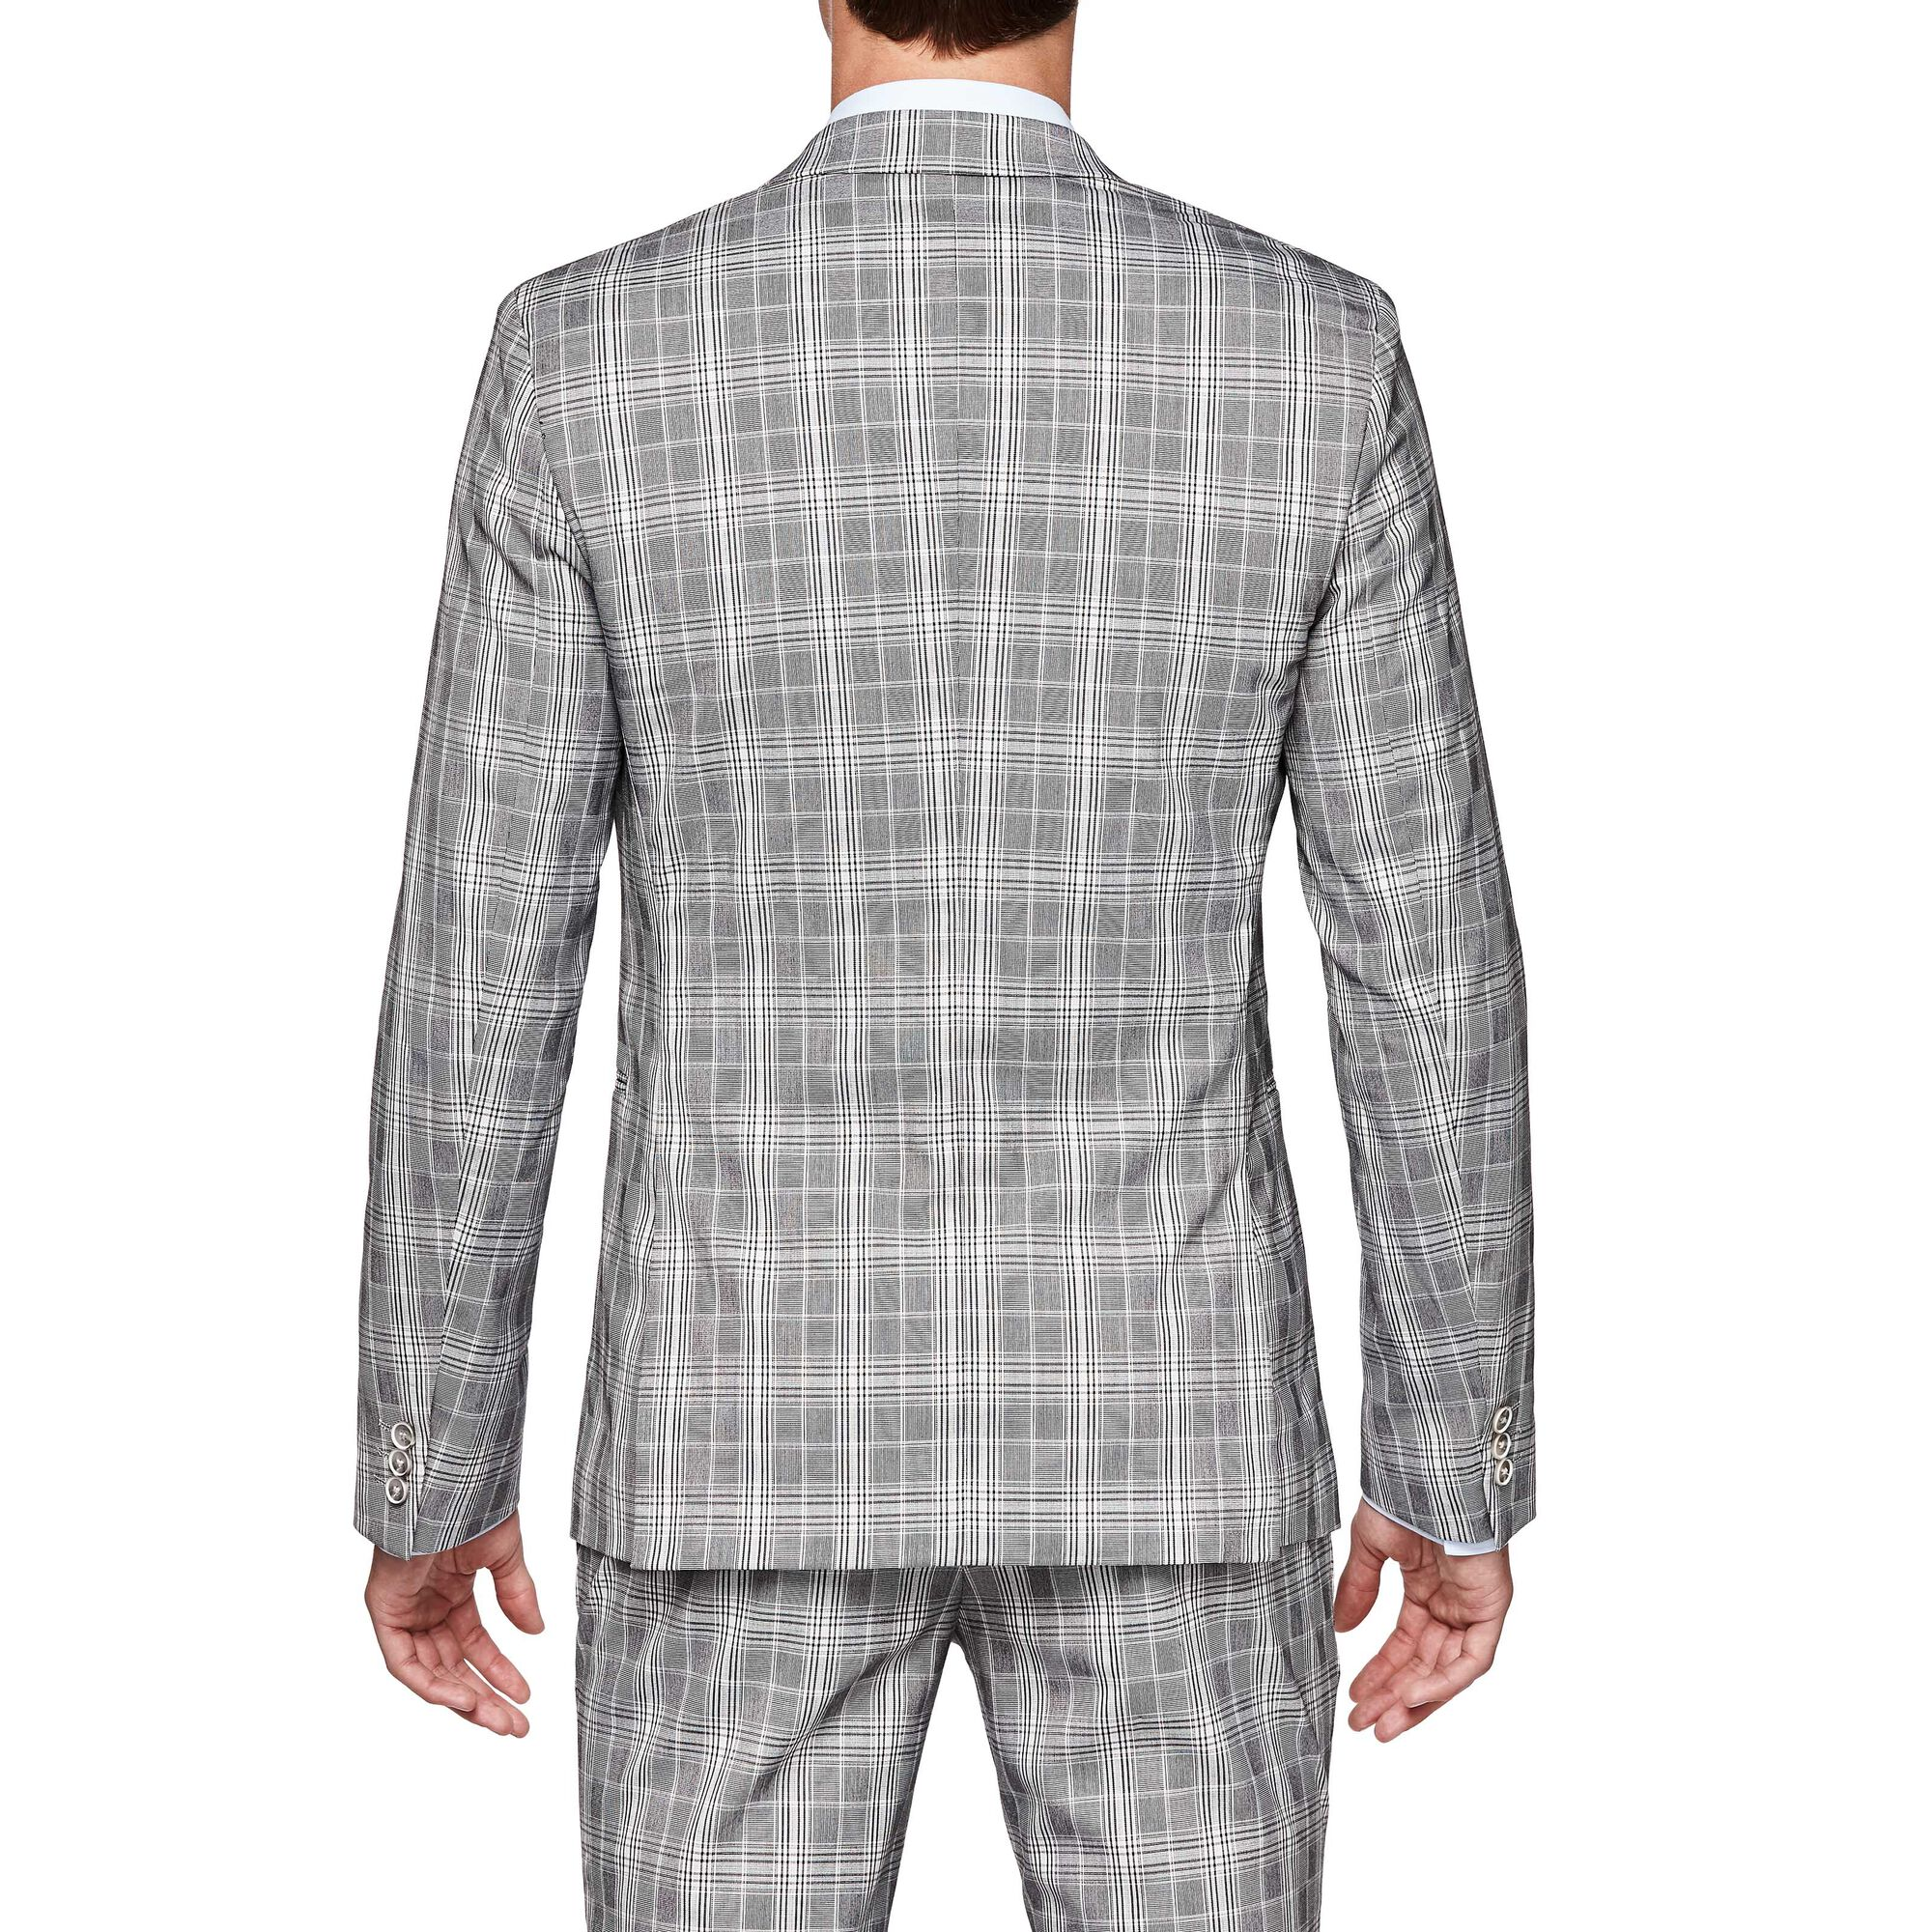 768c64ca Staveley - Beige Check - Double Breasted Check Suit Jacket | Politix